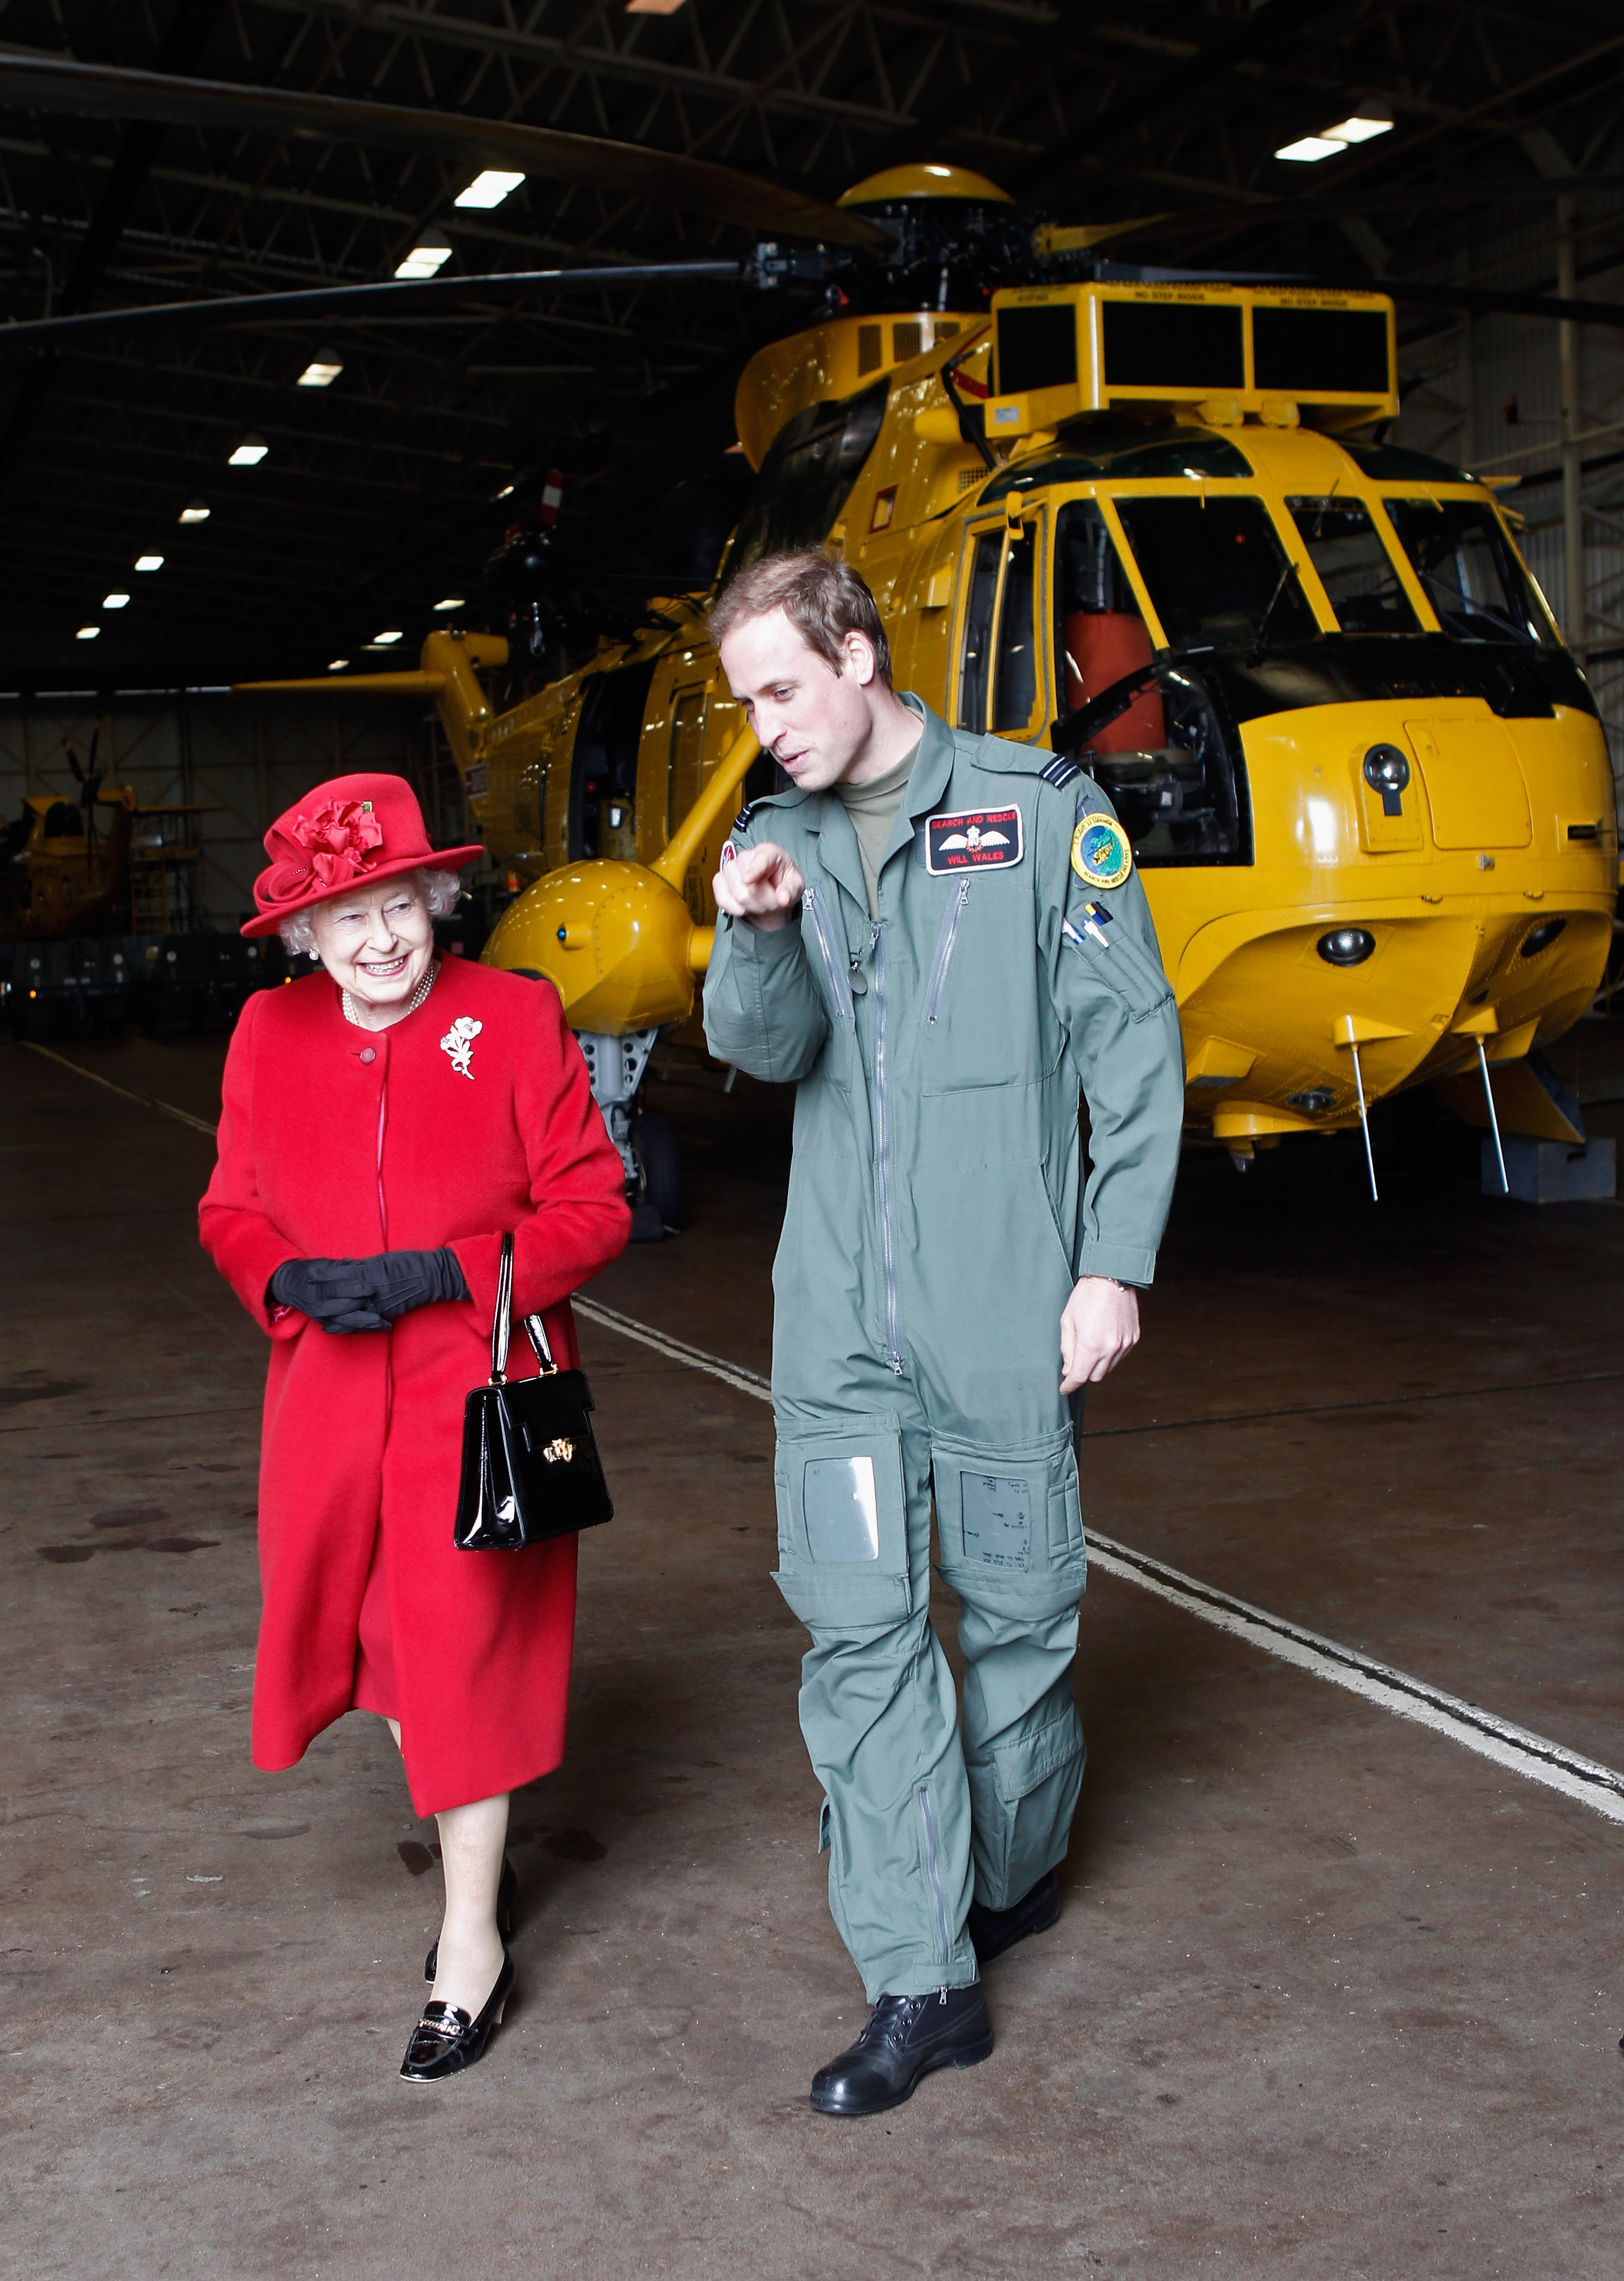 HOLYHEAD, UNITED KINGDOM - APRIL 01: Queen Elizabeth II is escorted by her grandson Prince William during a visit to RAF Valley where Prince William is stationed as a search and rescue helicopter pilot on April 1, 2011 in Holyhead, United Kingdom. The Queen toured the airbase meeting staff and families, watched a fly past and was given a guided tour of a Sea King search and rescue helicopter by Prince William. (Photo by Christopher Furlong-WPA-Pool/Getty Images)